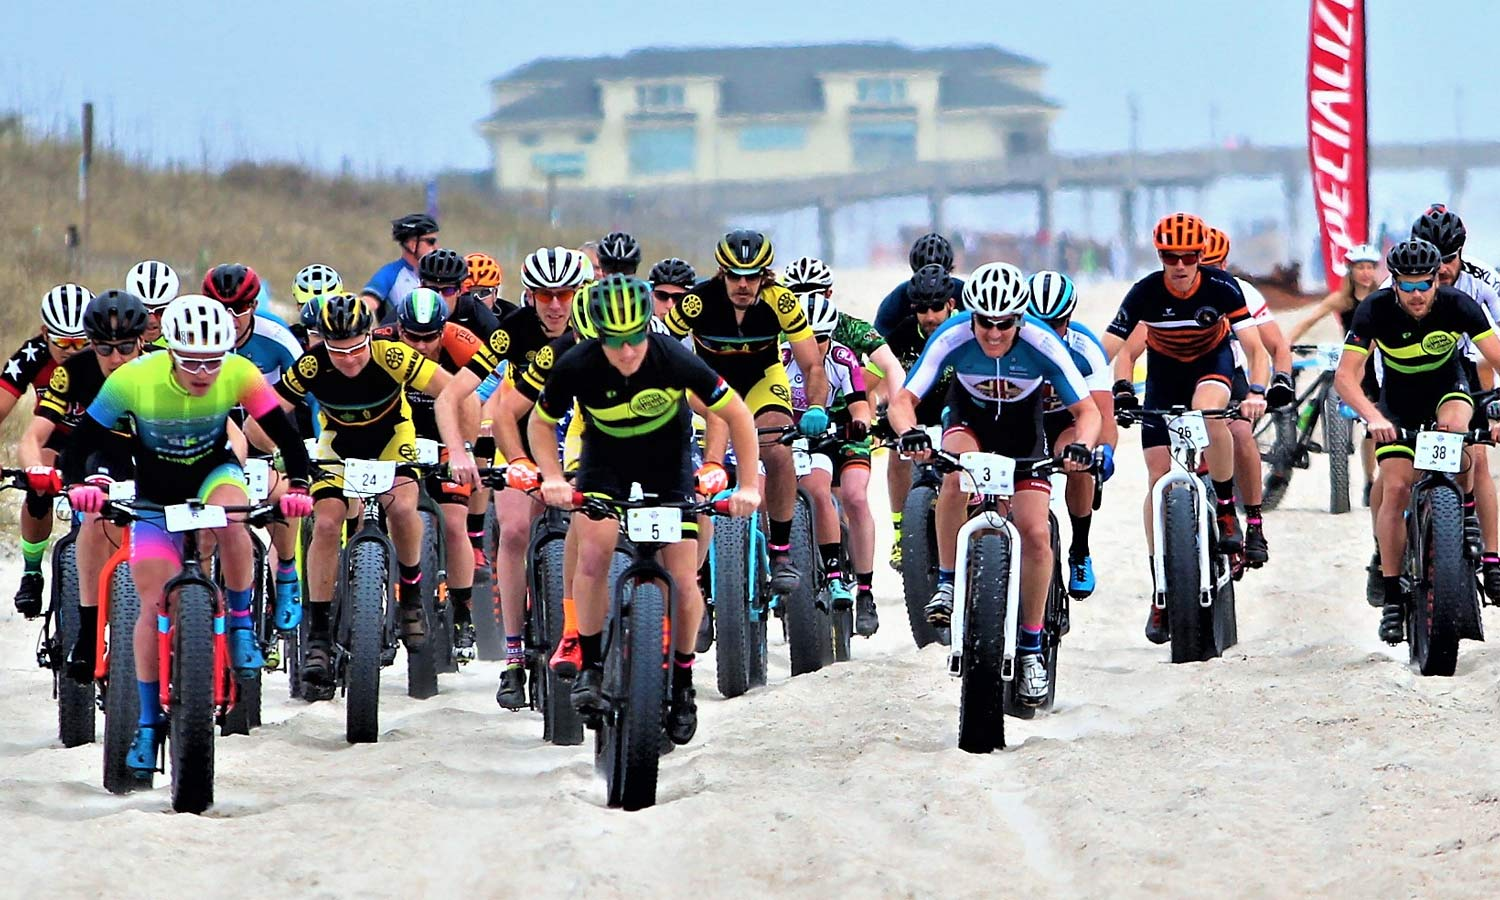 1cc9e570733 US Open Fat Bike Beach Champs growing this March – Already the largest fat  bike beach race on the East Coast, the US Open Fat Bike Beach Championship  is ...